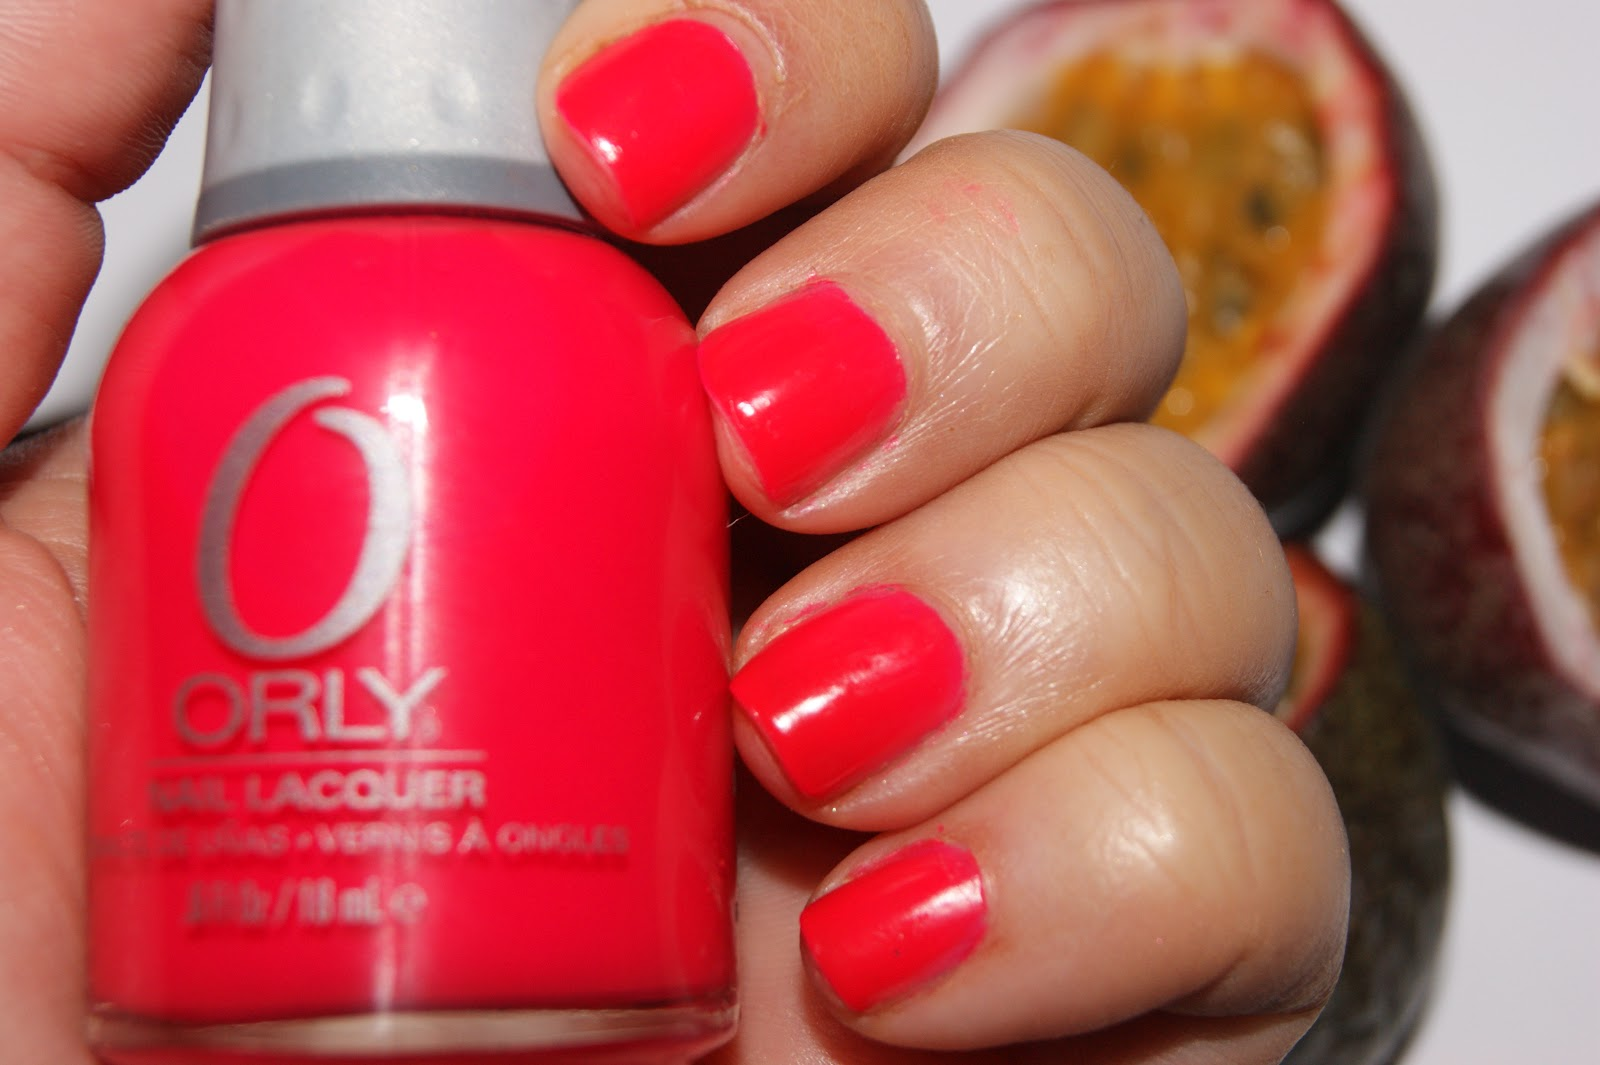 Orly Passion Fruit Nail Polish - Review | The Sunday Girl